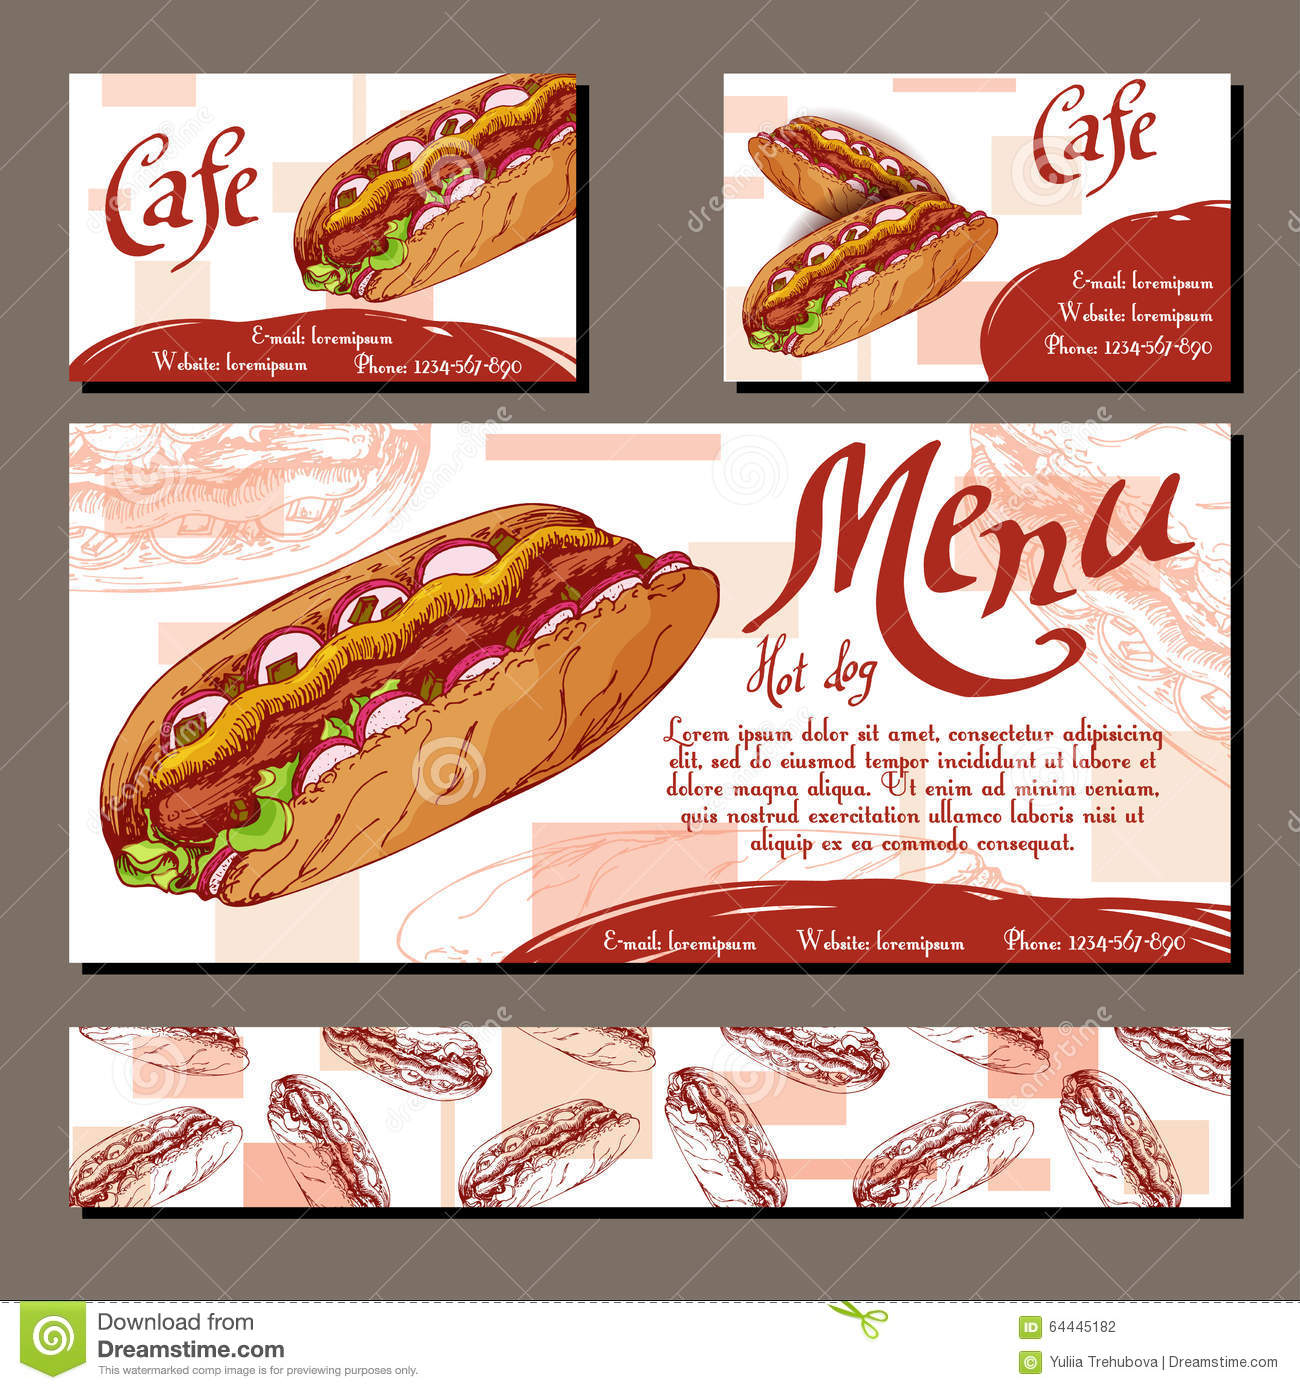 cafe menu with hand drawn design fast food restaurant. Black Bedroom Furniture Sets. Home Design Ideas